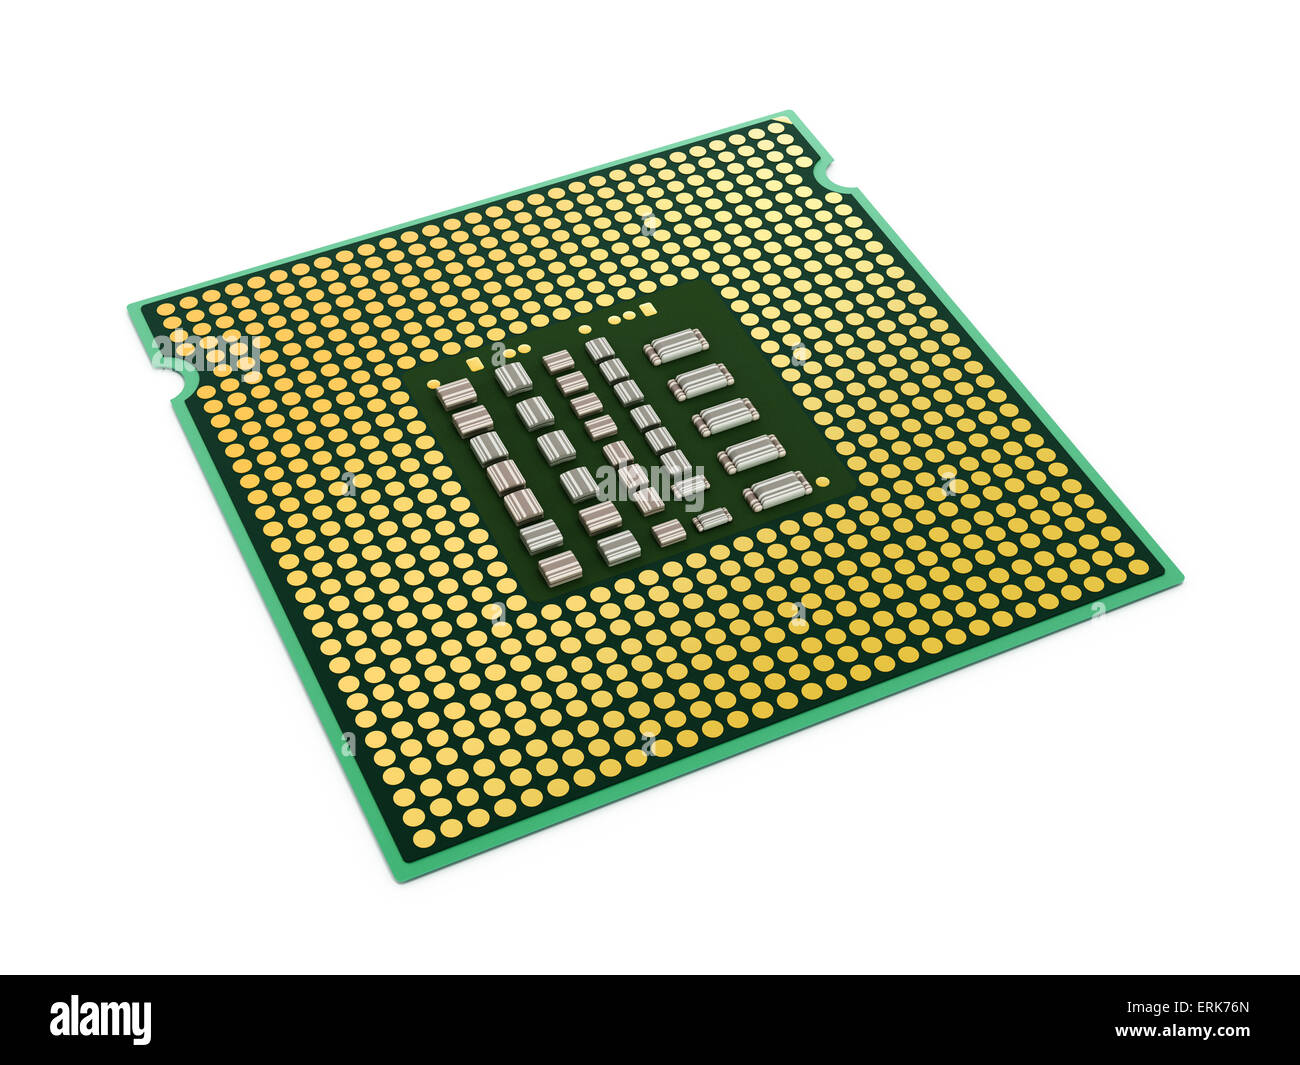 Computer microprocessor isolated on white background. - Stock Image